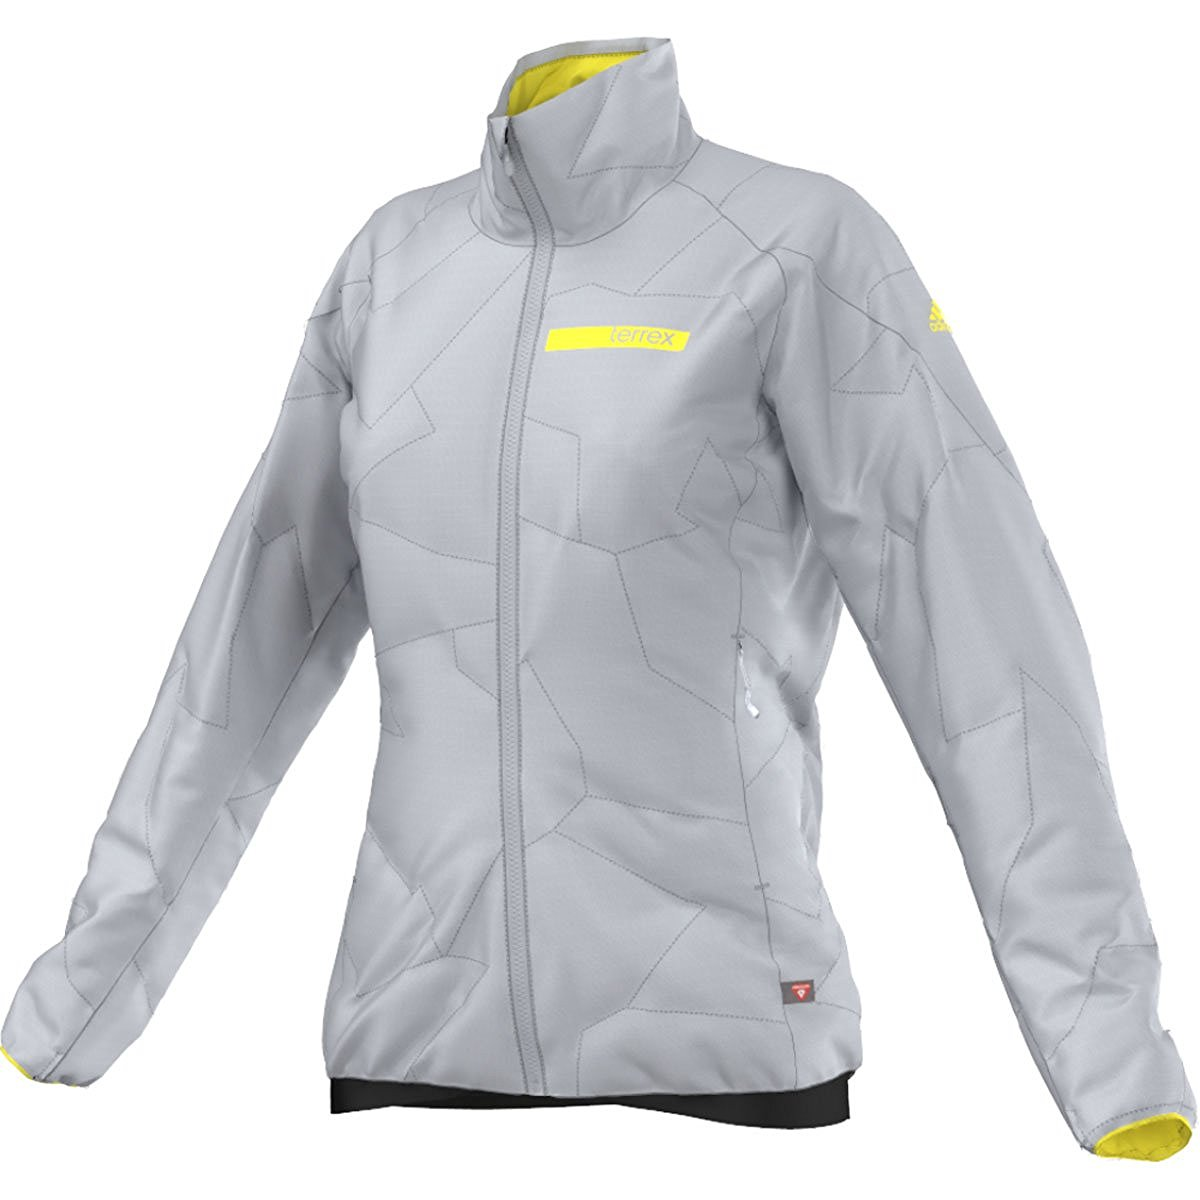 Jacket Women's Adidas SizeLarge Primaloft Check Back Grey Clear Terrex Soon Swift oCxdreB